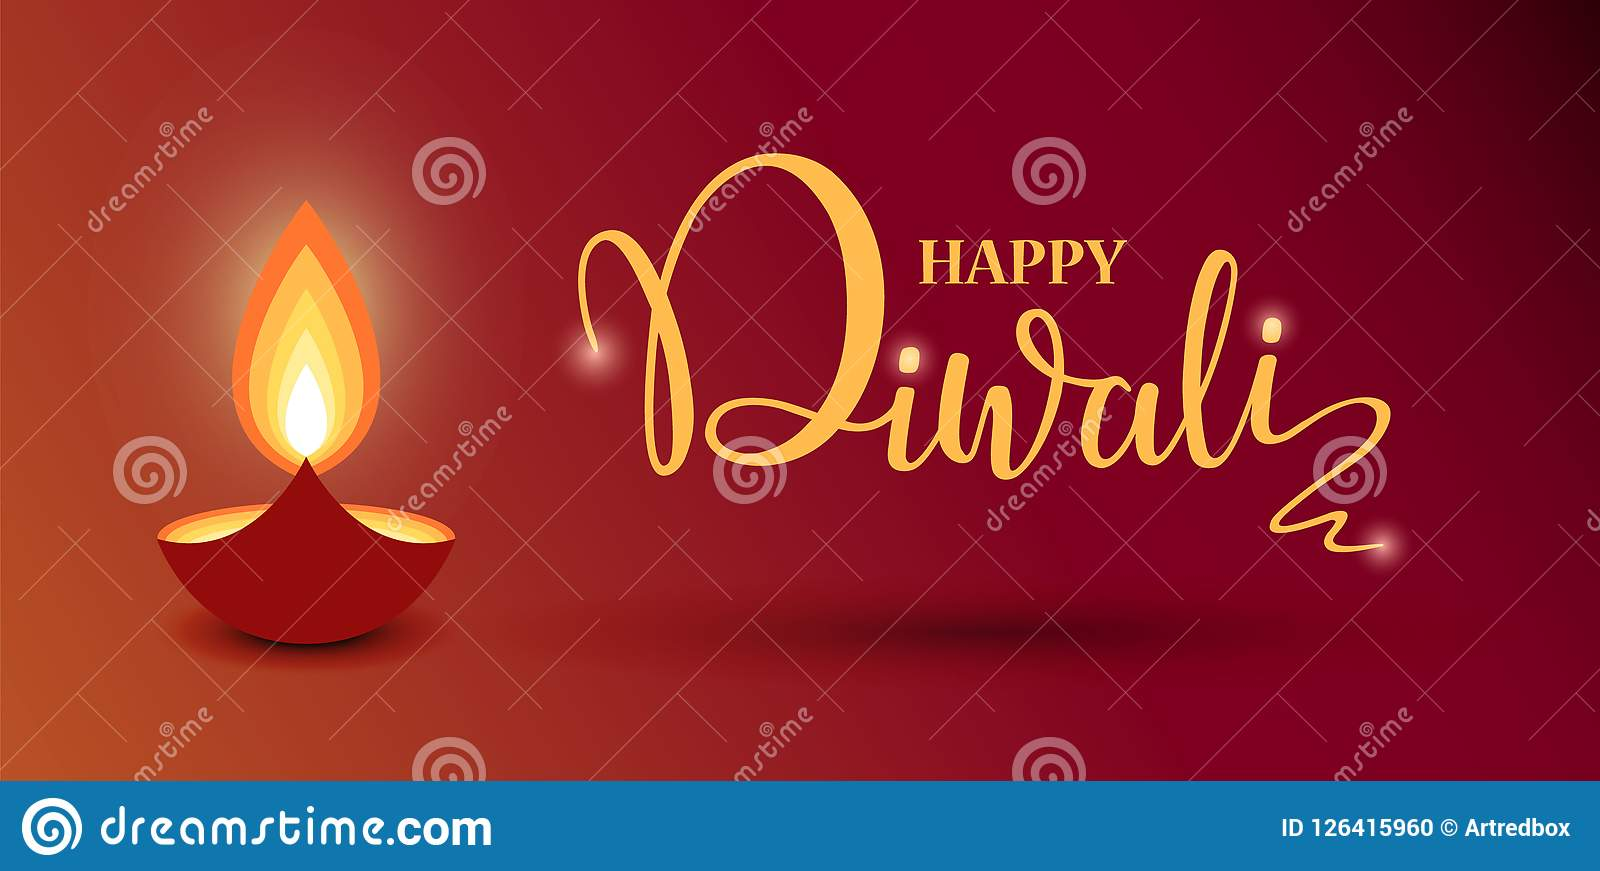 Happy Diwali lettering wallpaper design template. illustration of burning Diwali diya for light festival of India.